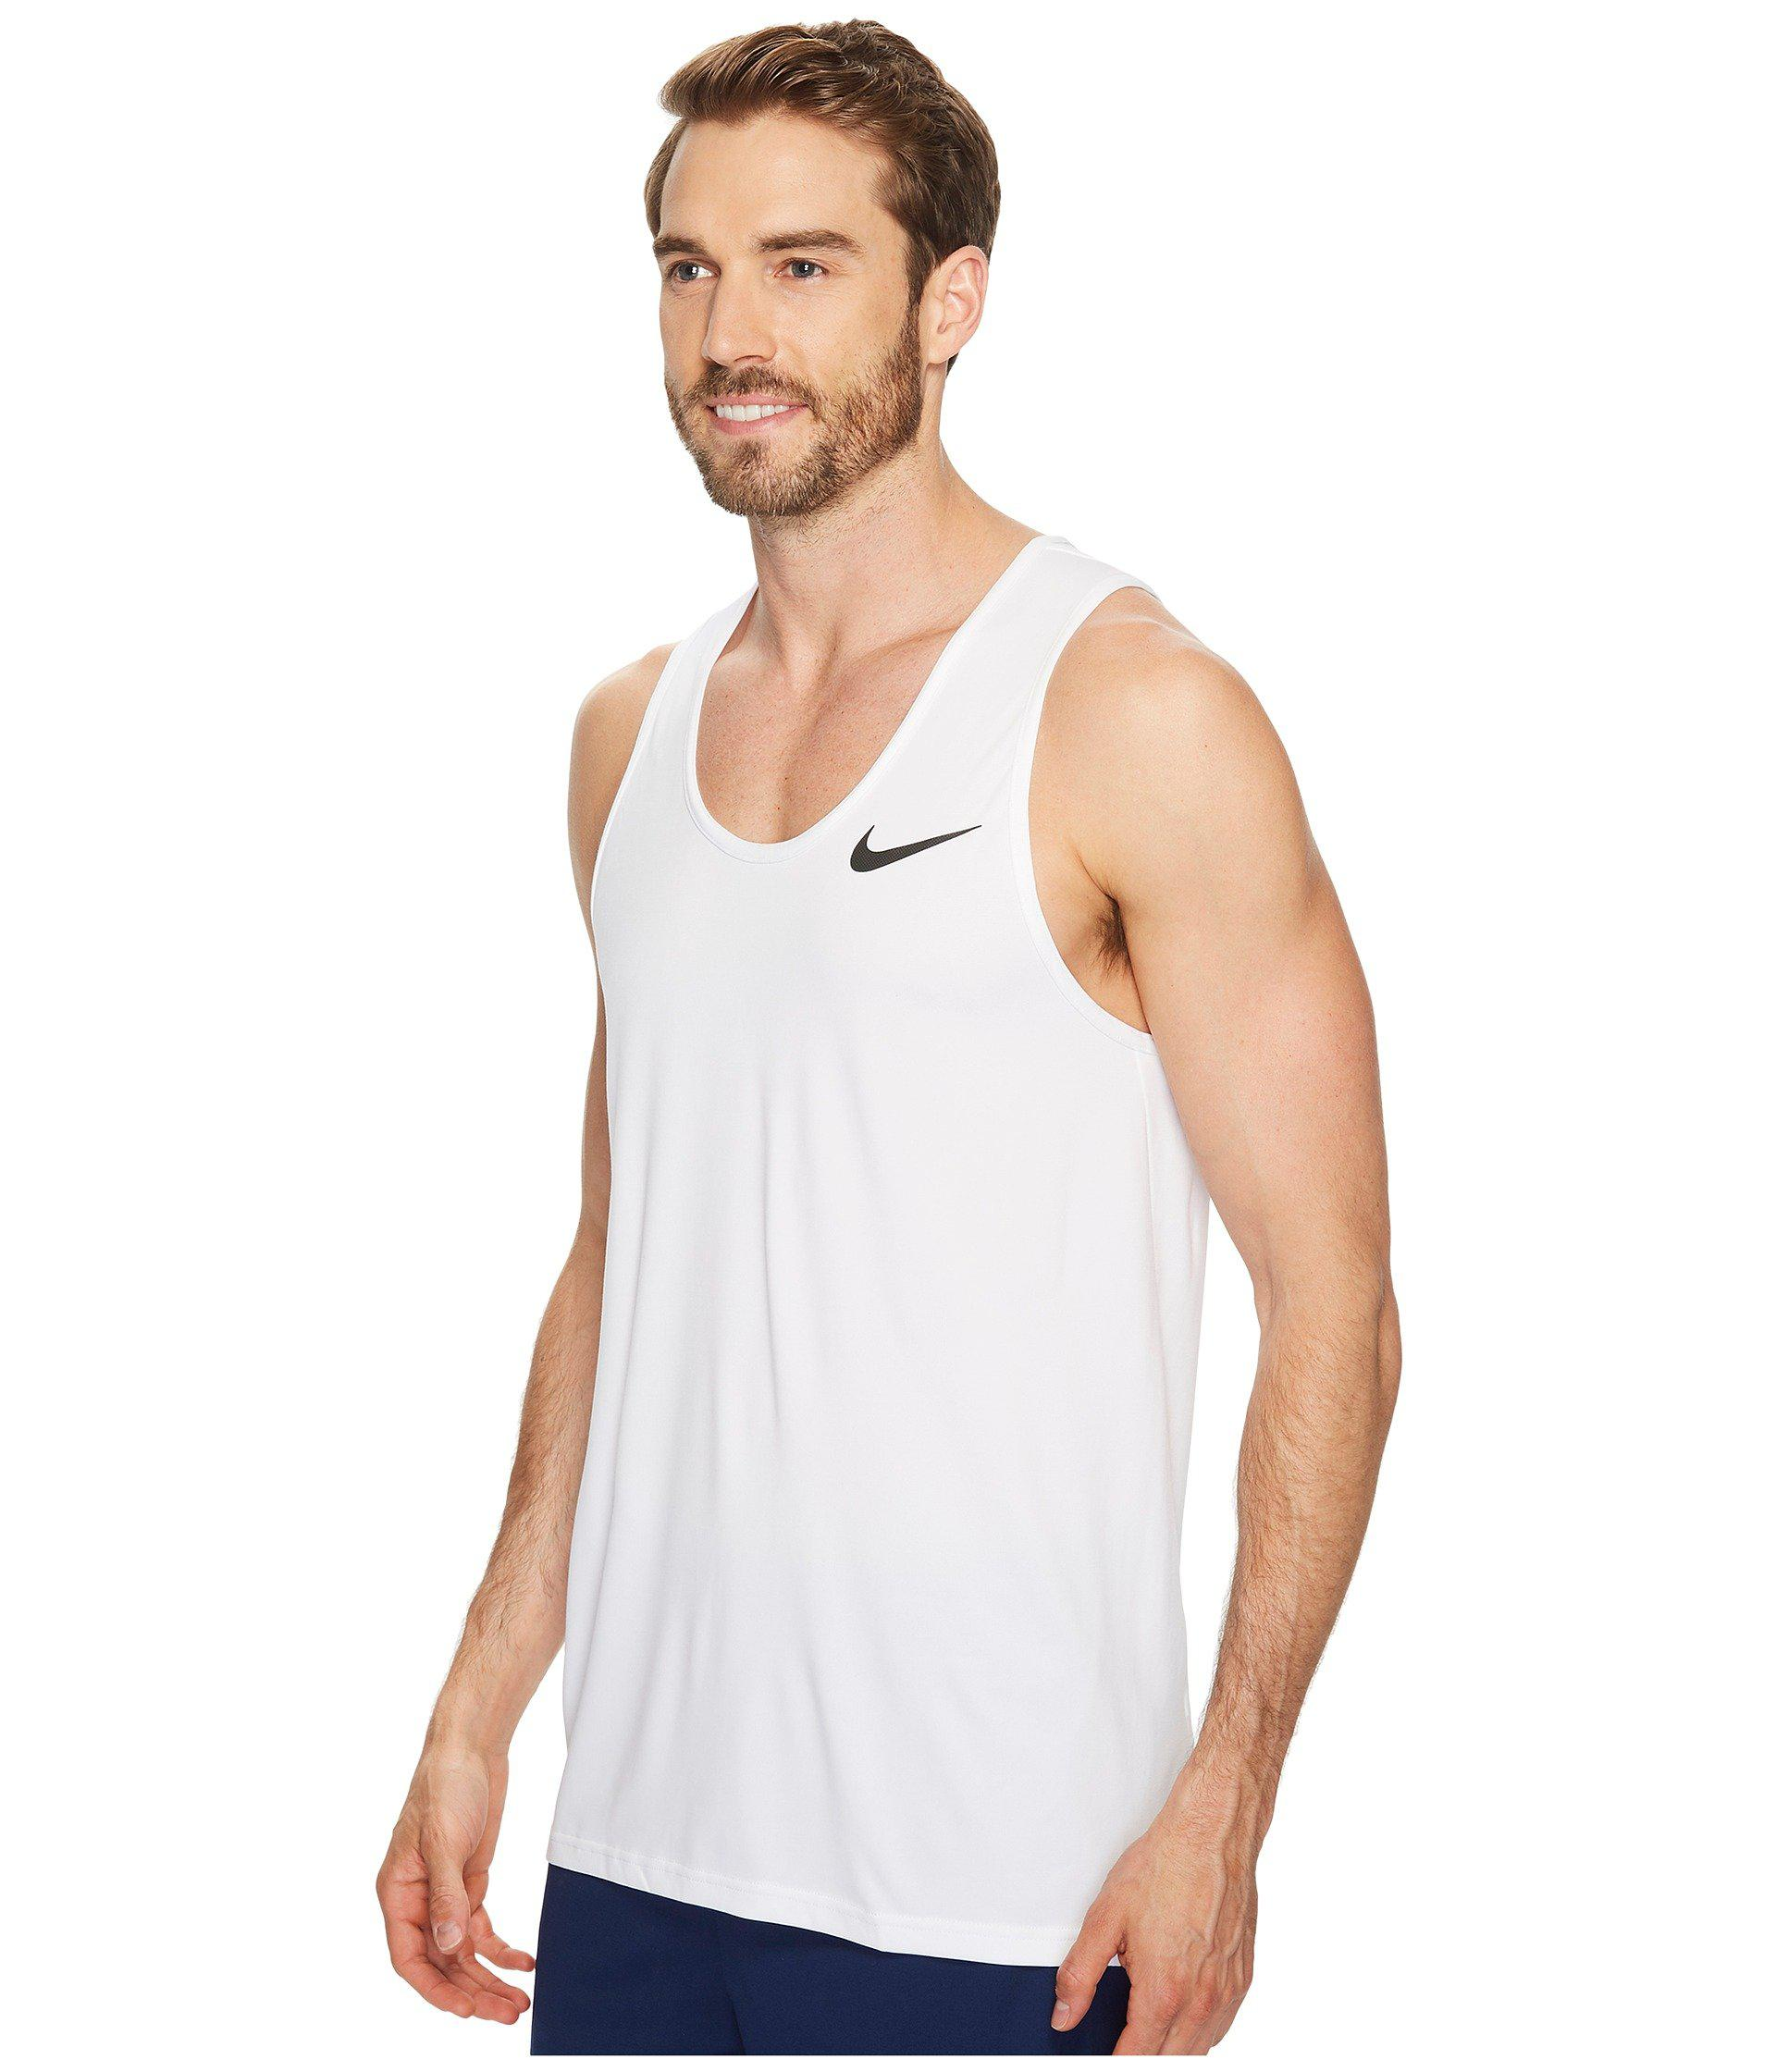 91a40472 Lyst - Nike Breathe Training Tank in White for Men - Save 32%